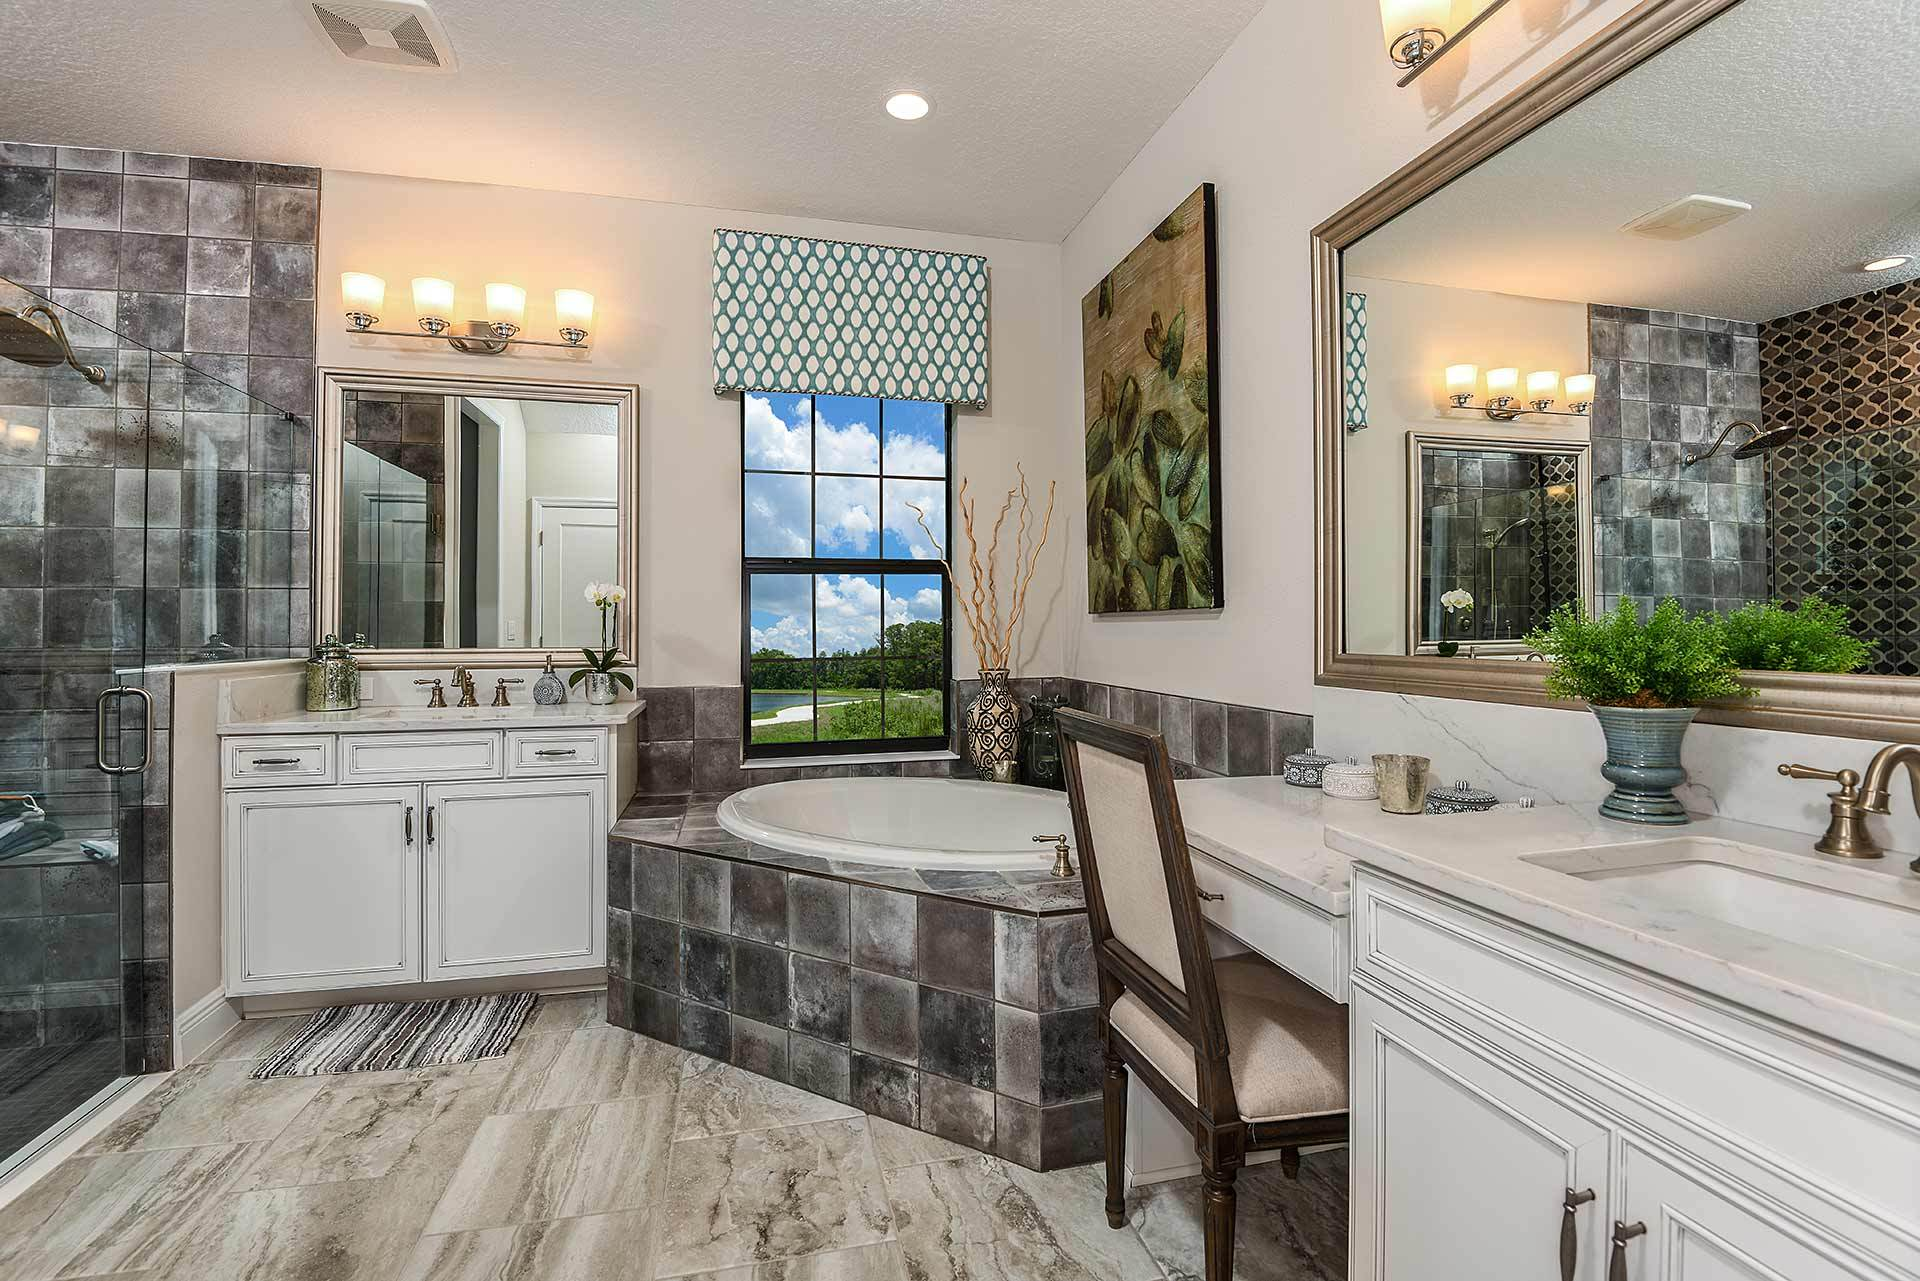 Bathroom featured in the Bayshore II By Homes by WestBay in Tampa-St. Petersburg, FL